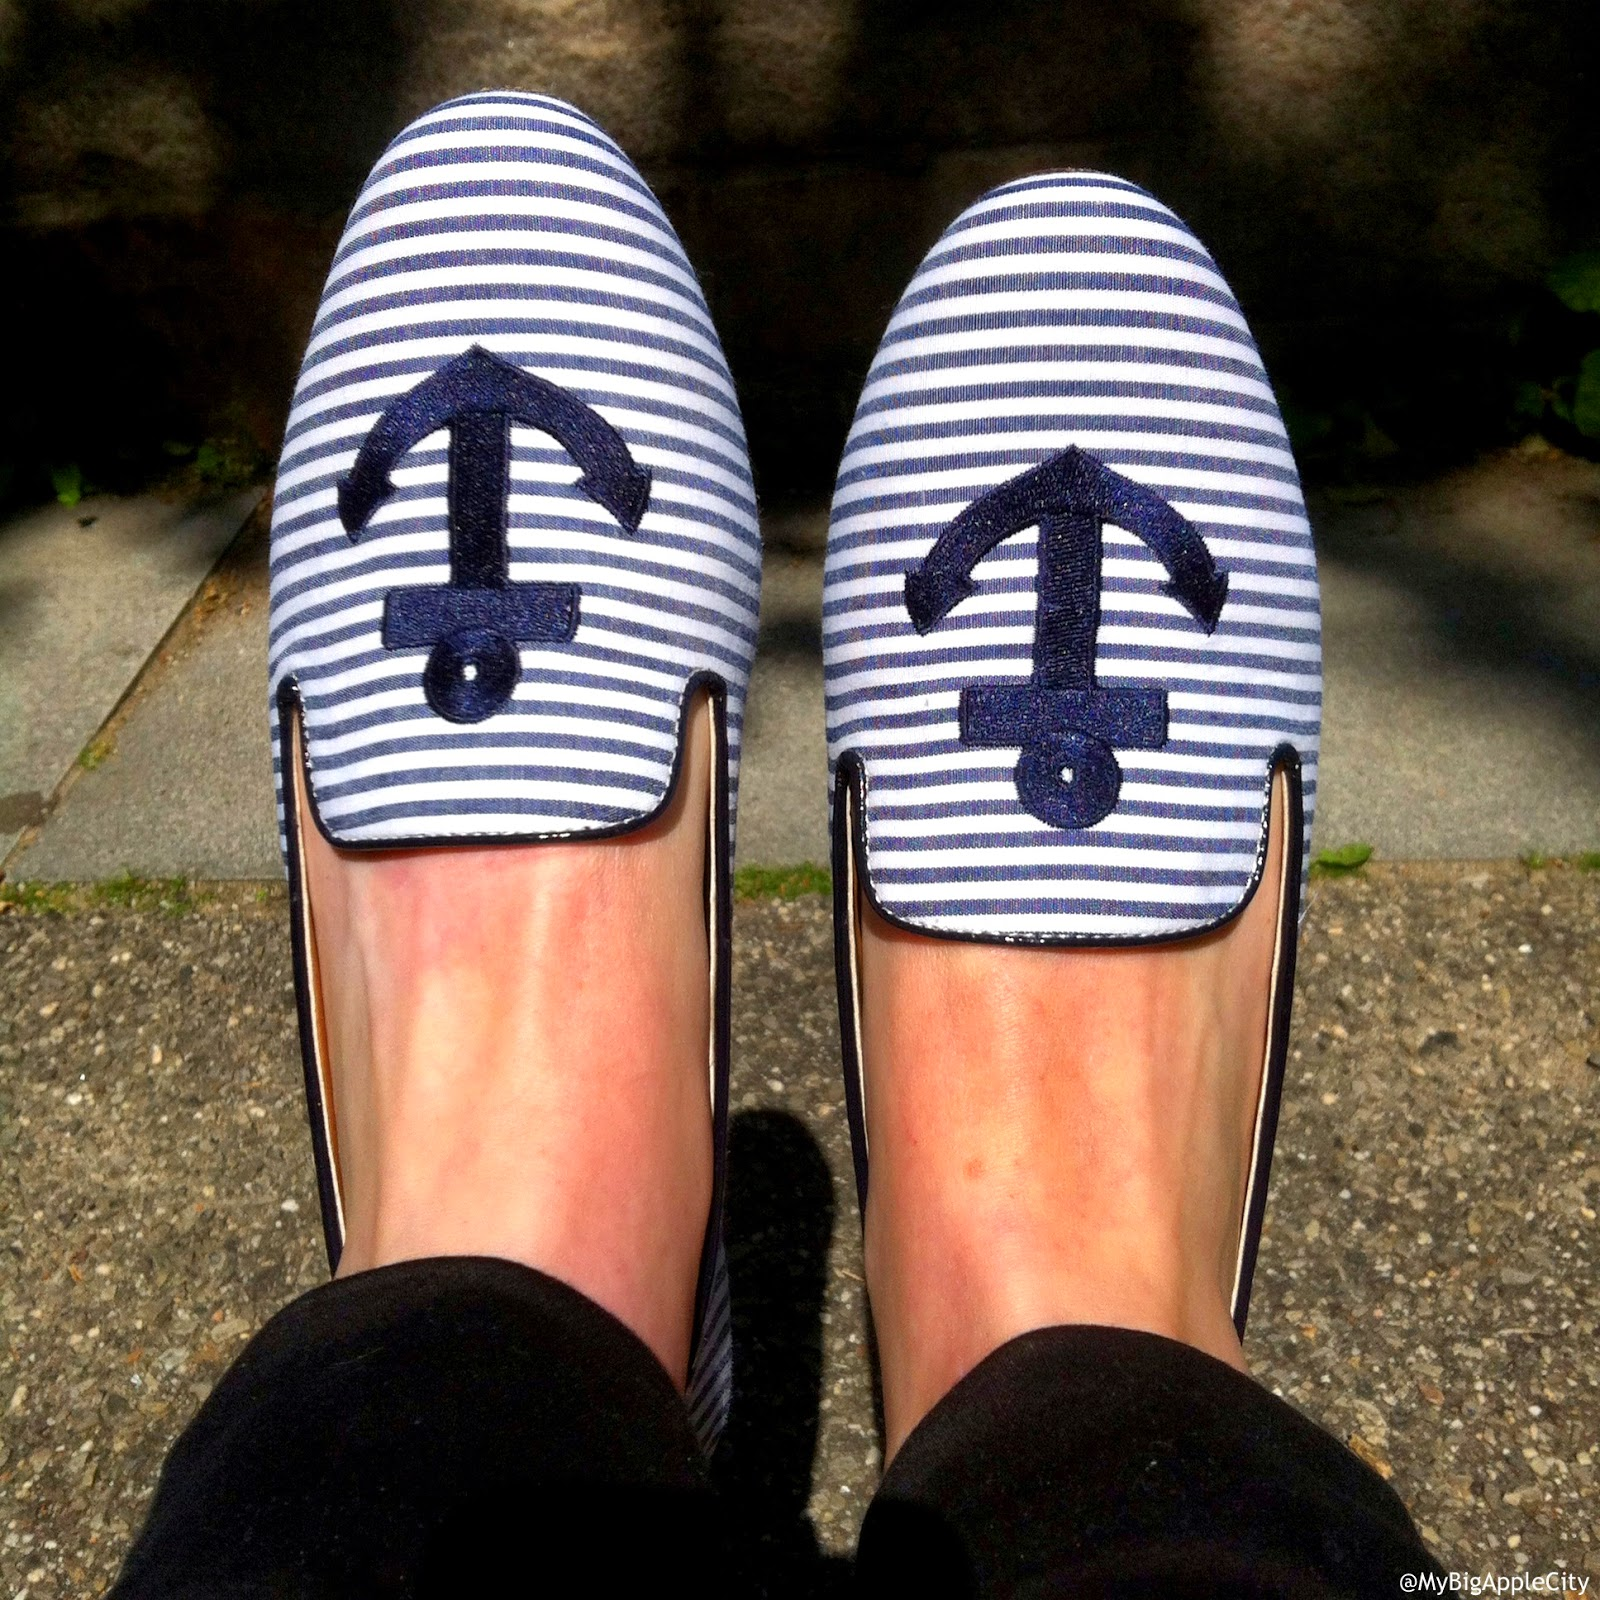 jcrew-loafers-nautical-ootd-shoes-fashionblogger